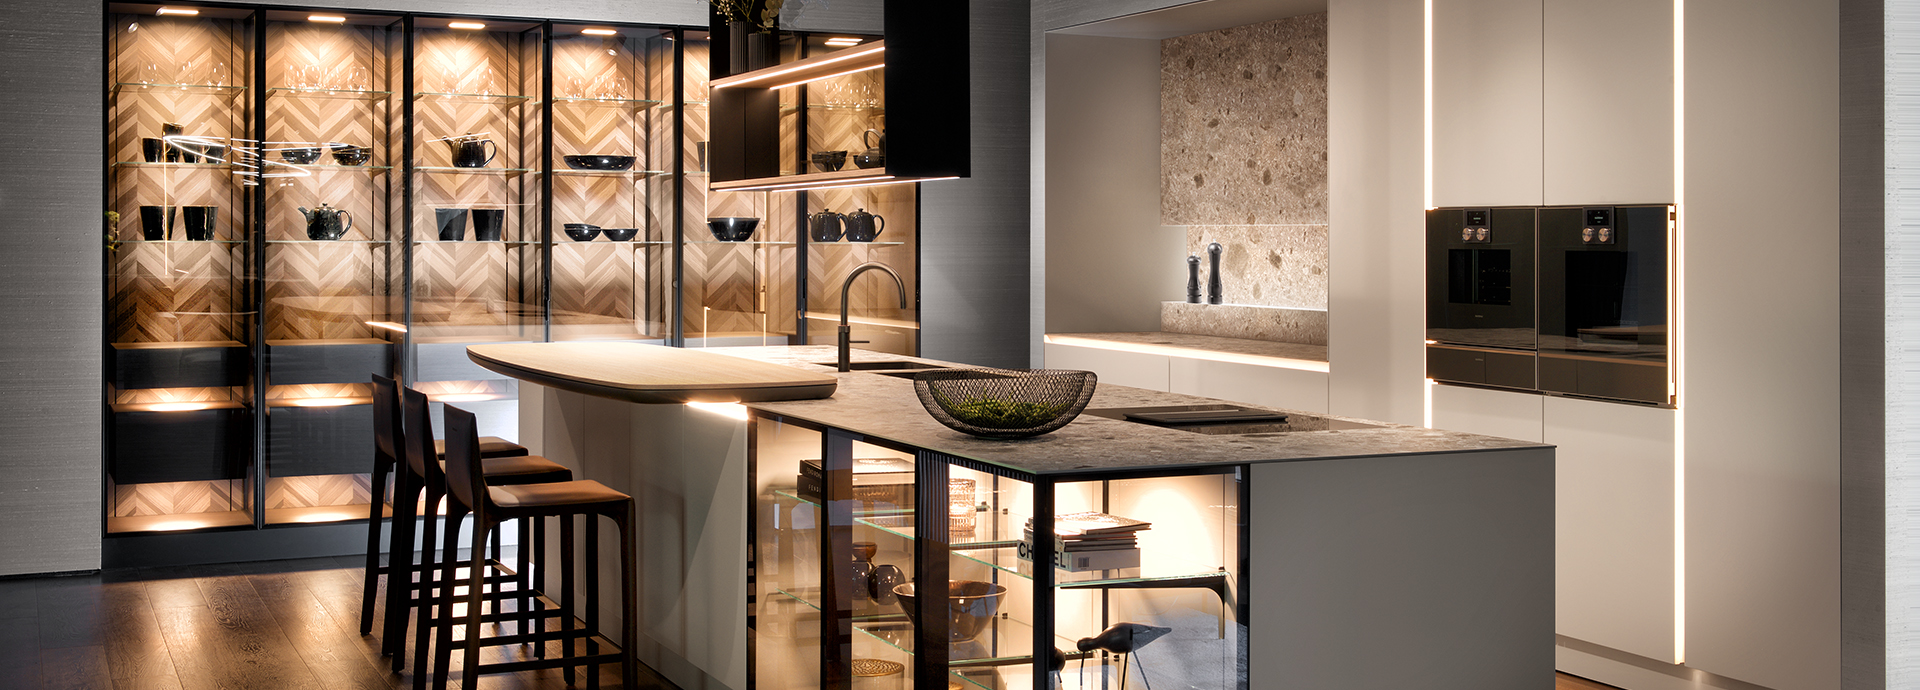 product-header_siematic-slx_pure_3.jpg